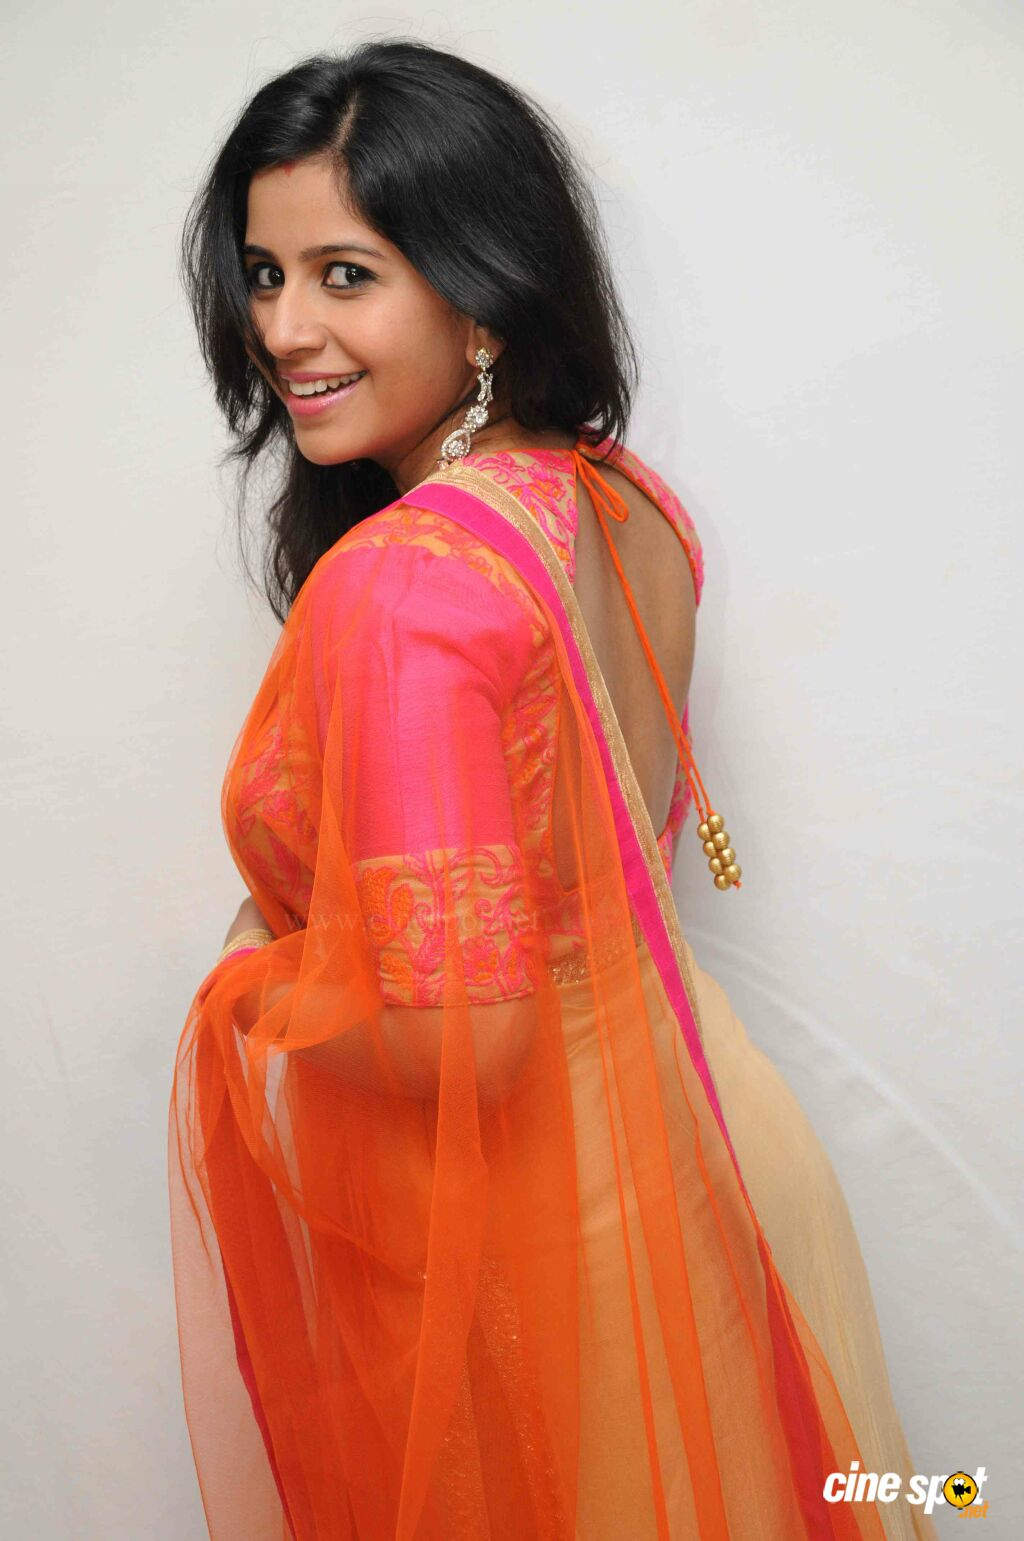 Http Www Cinespot Net Gallery V South Cinema Actress Anushree Kannada Actress Photos Anushree Photos 2 Jpg Html